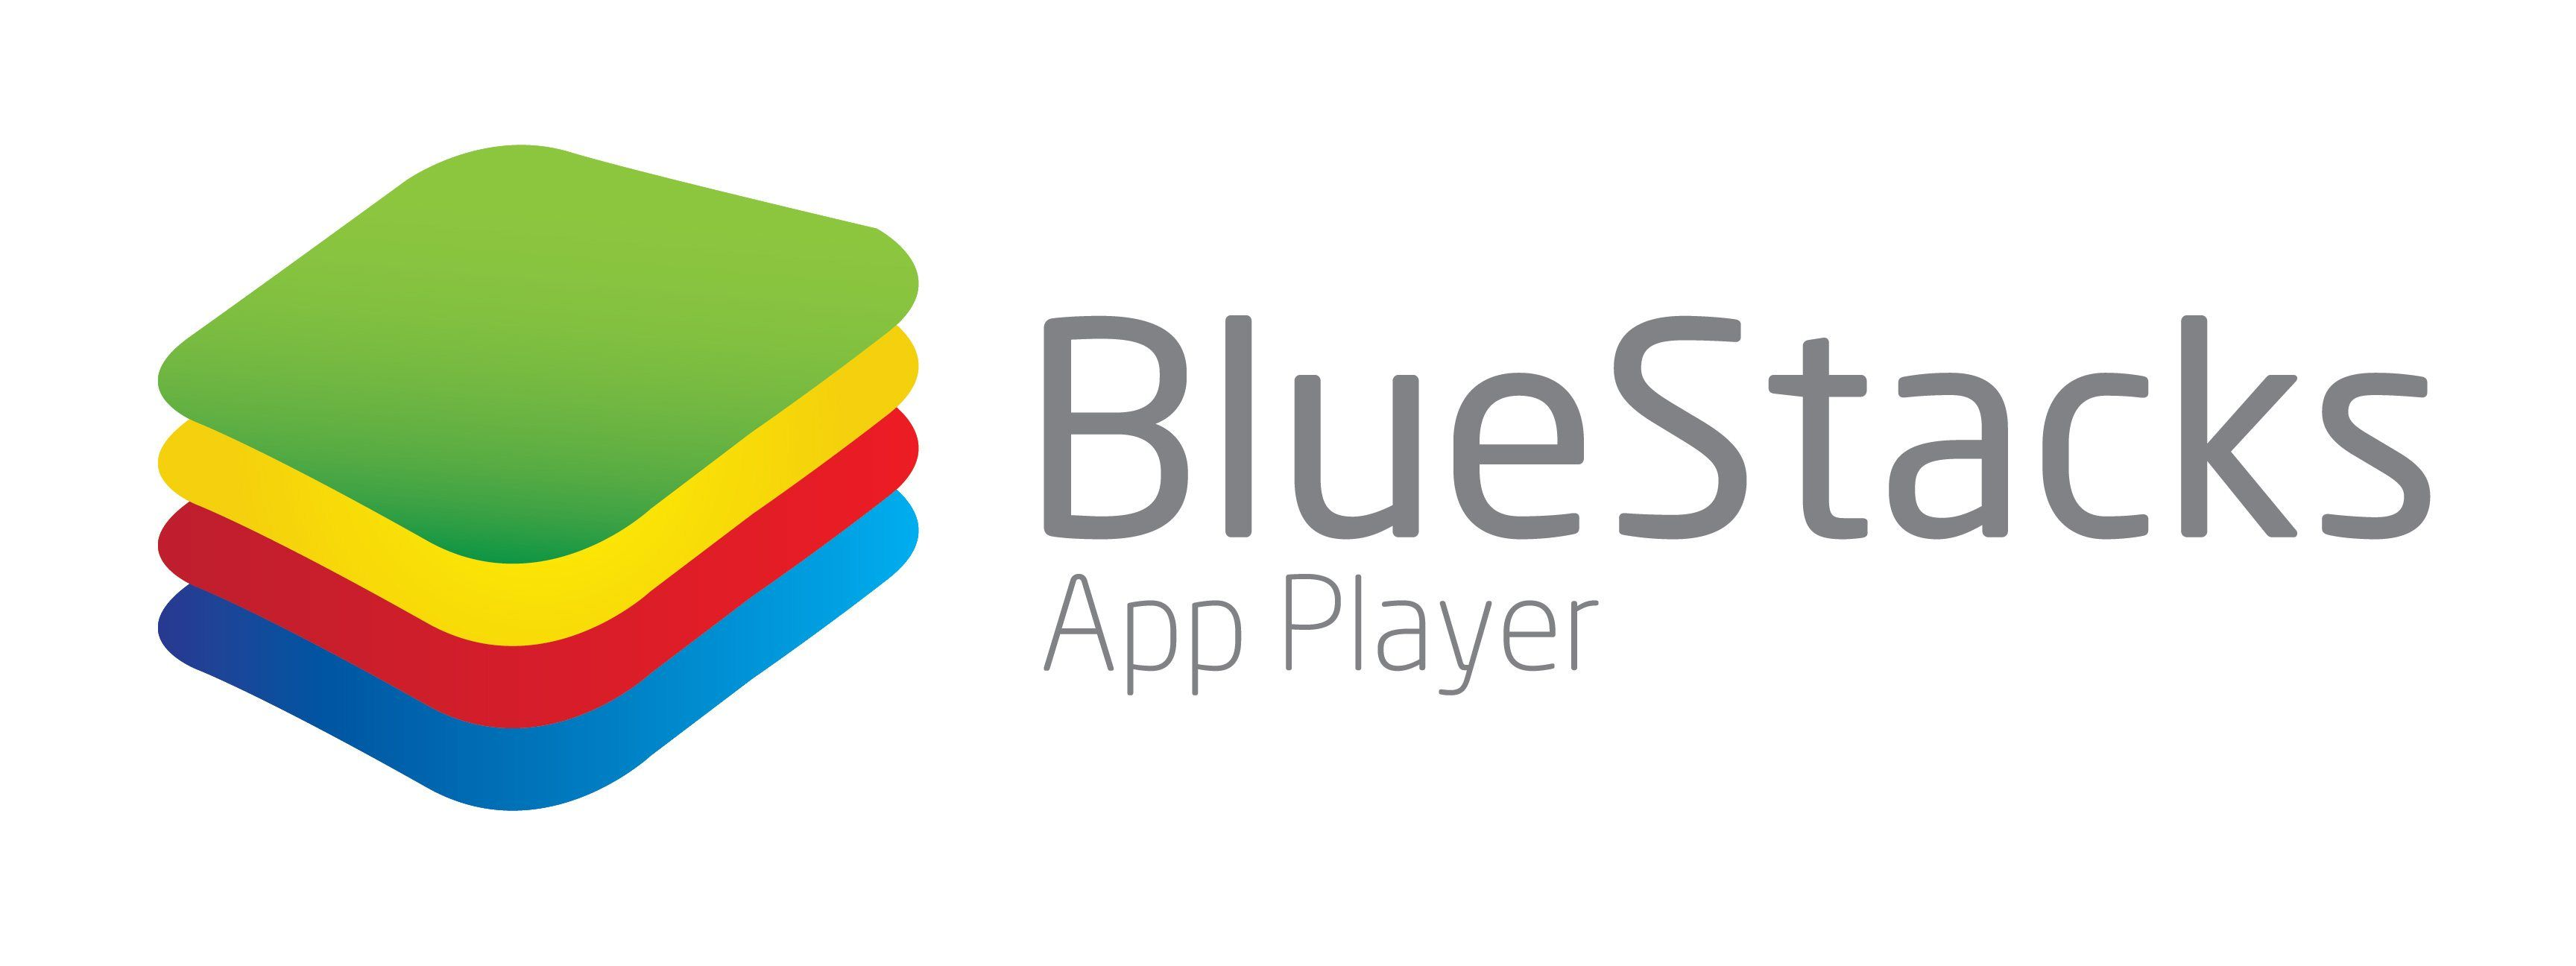 descargar emulador de Android Bluestacks